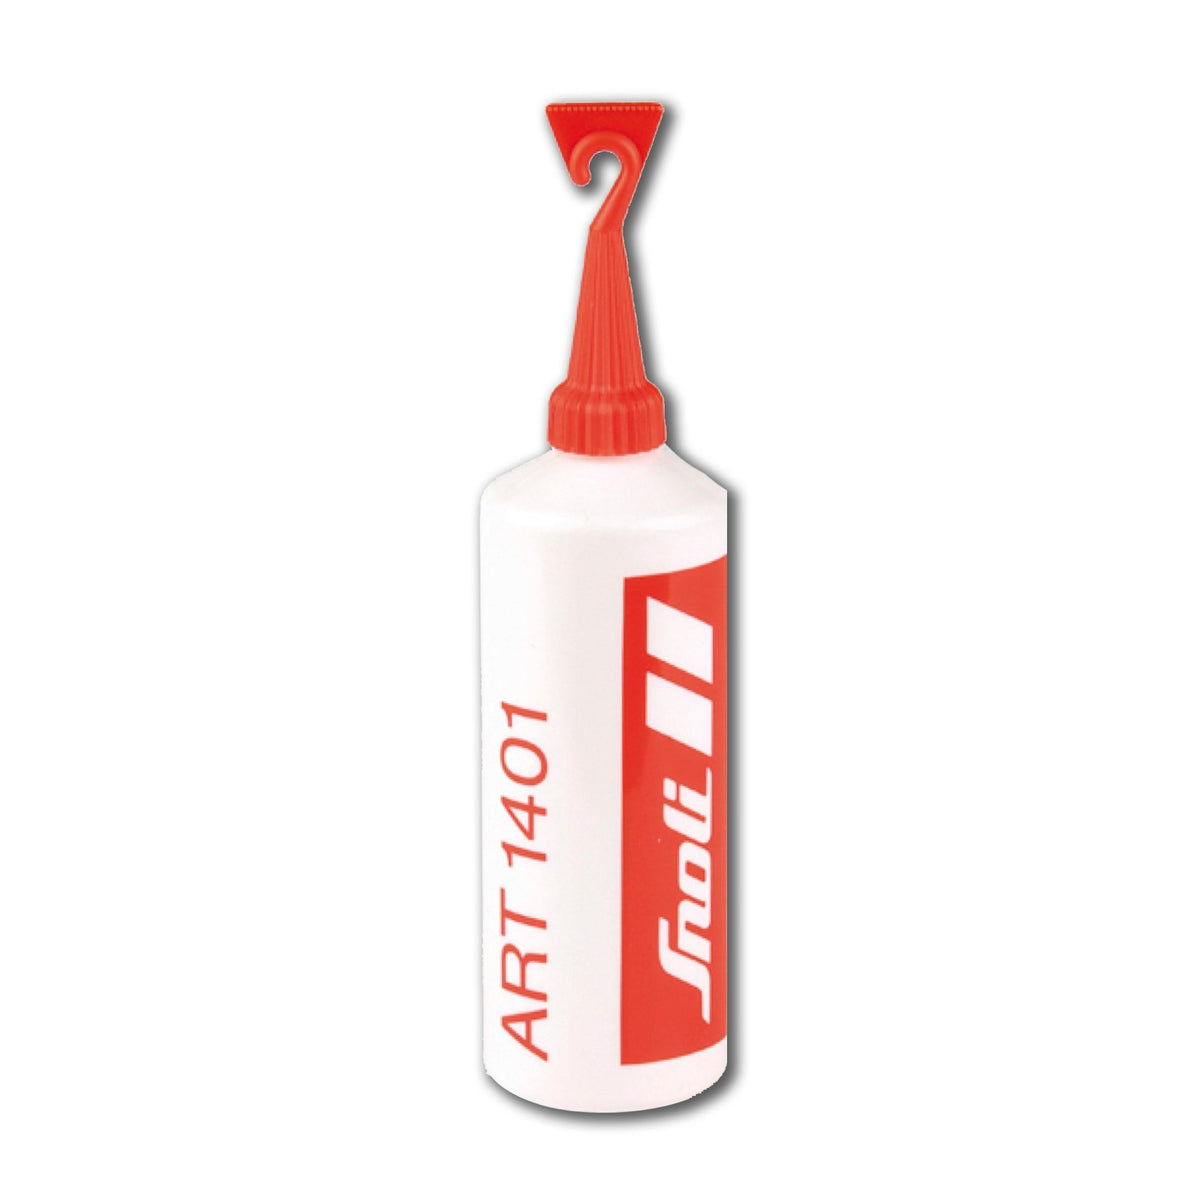 Snoli Ski Binding Glue - 100 ml by Snoli